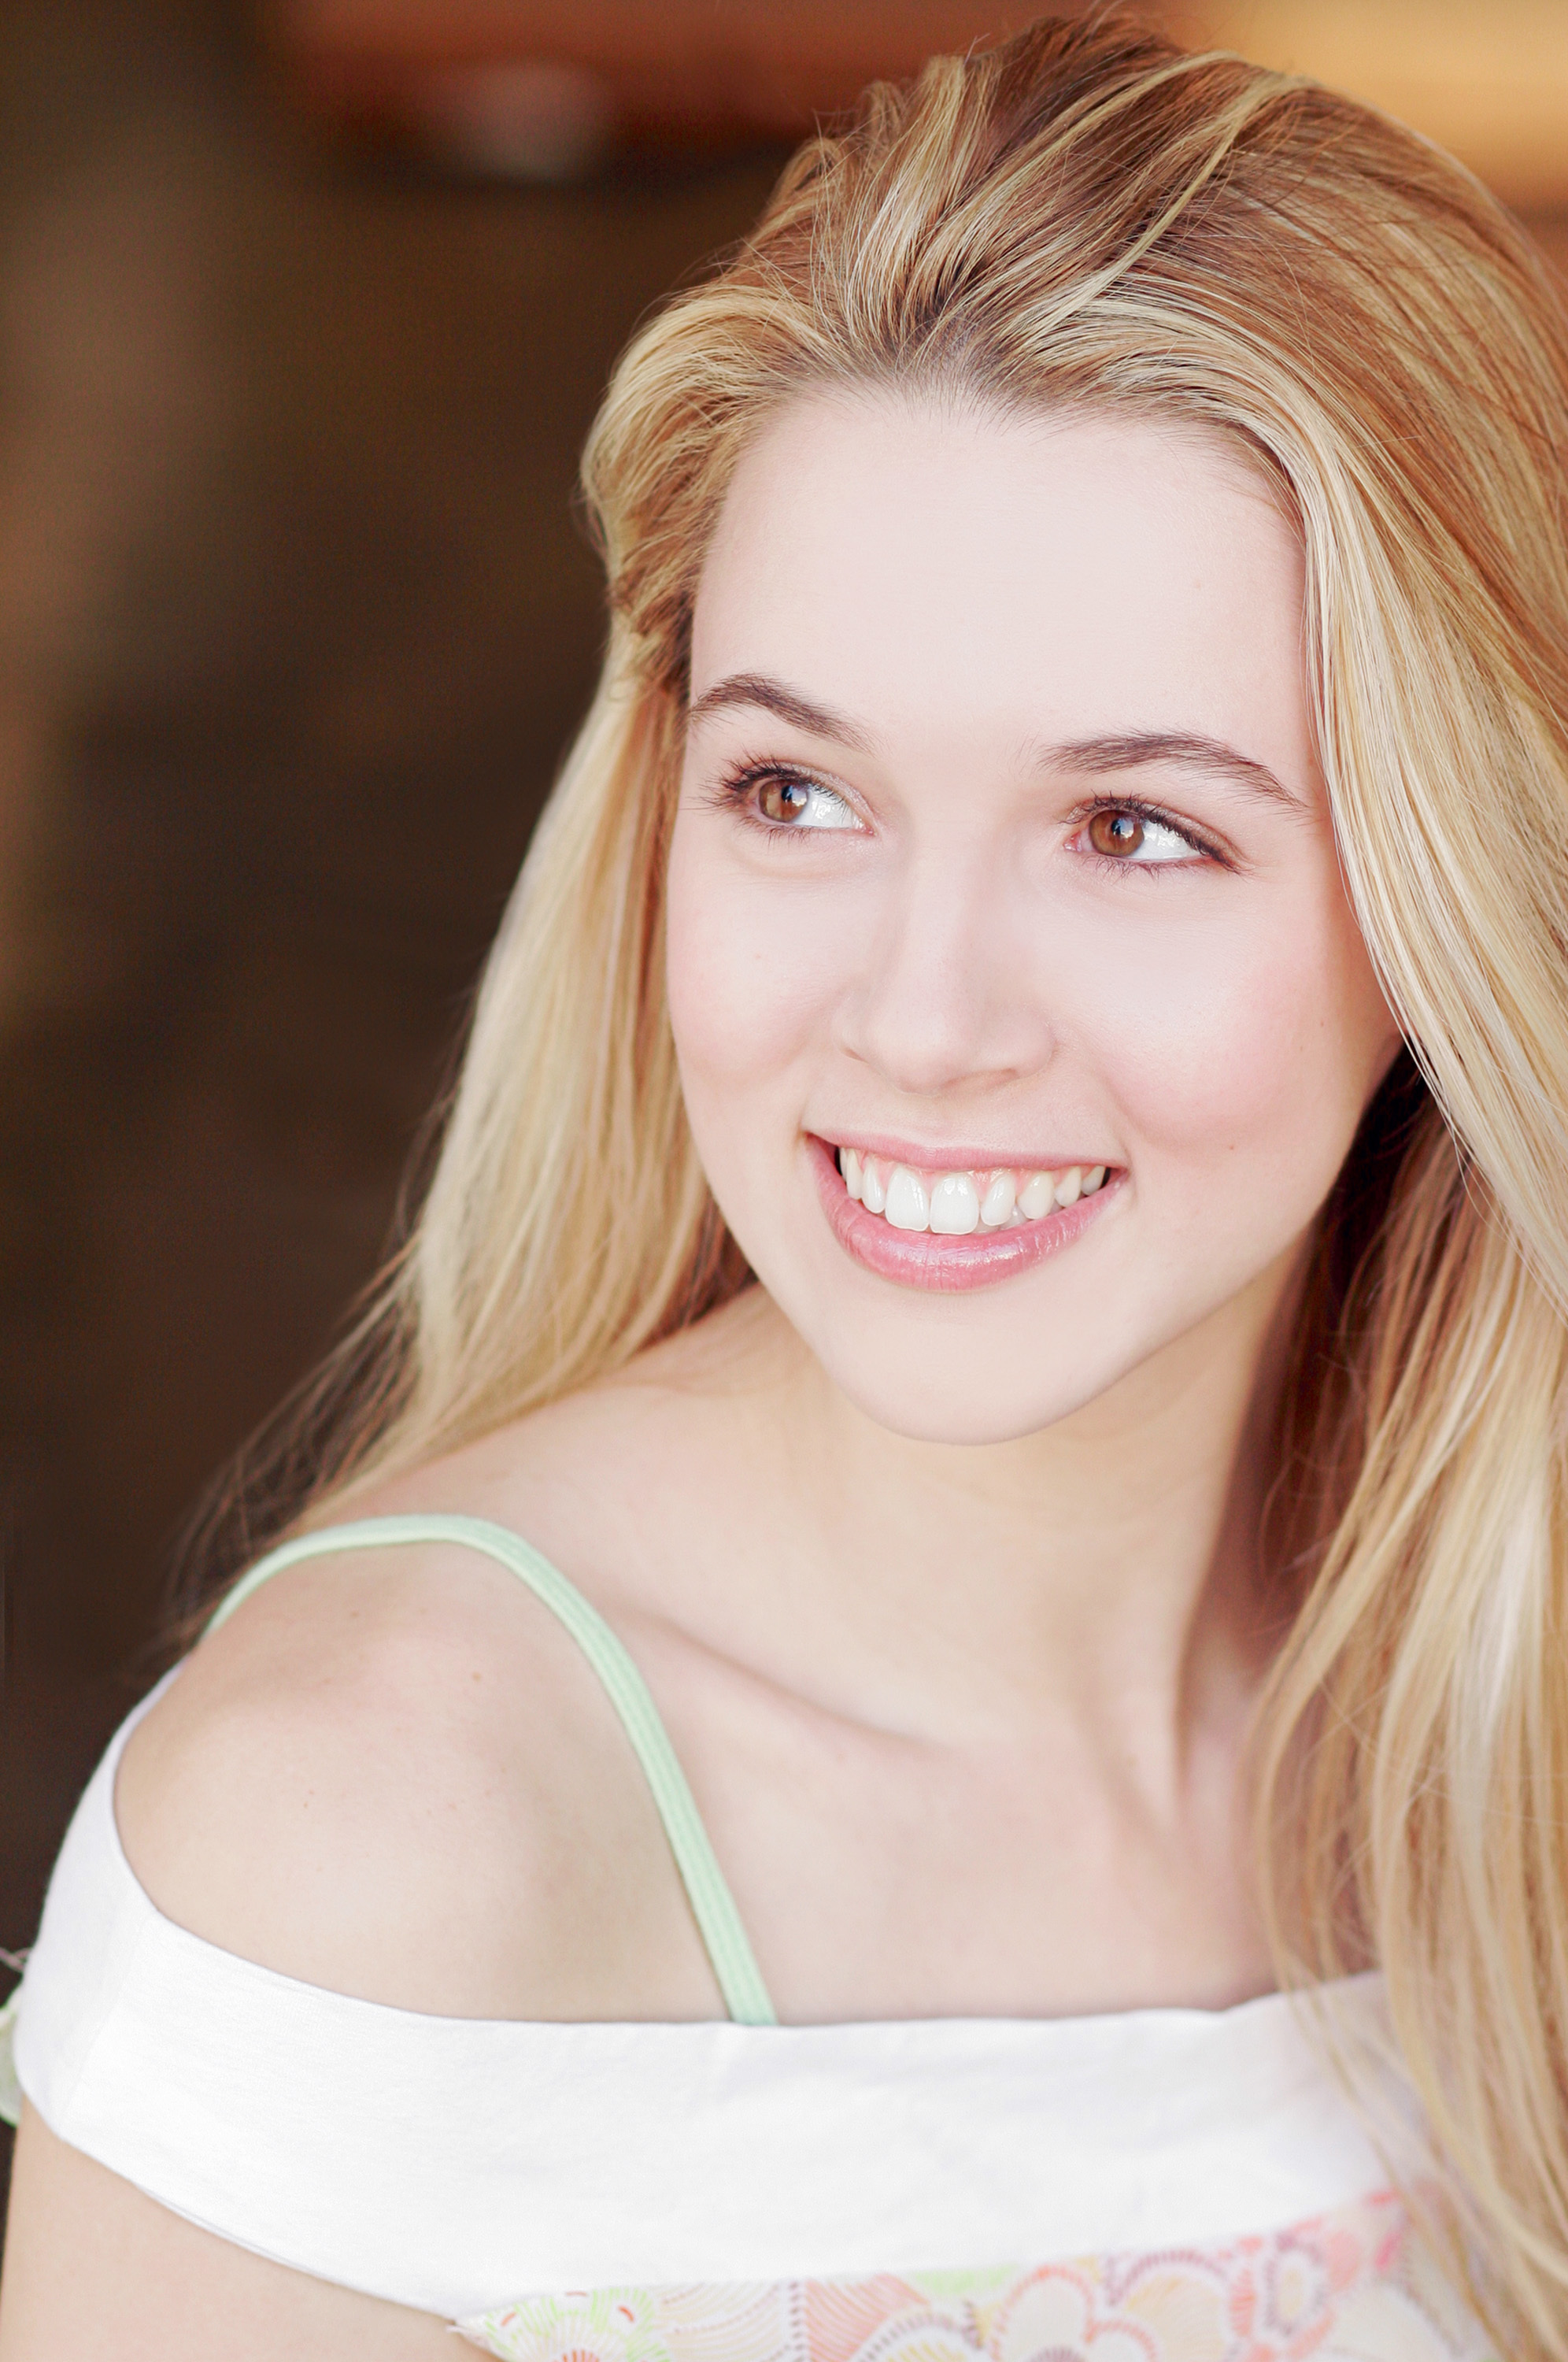 Alona Tal Wallpaper For Iphone